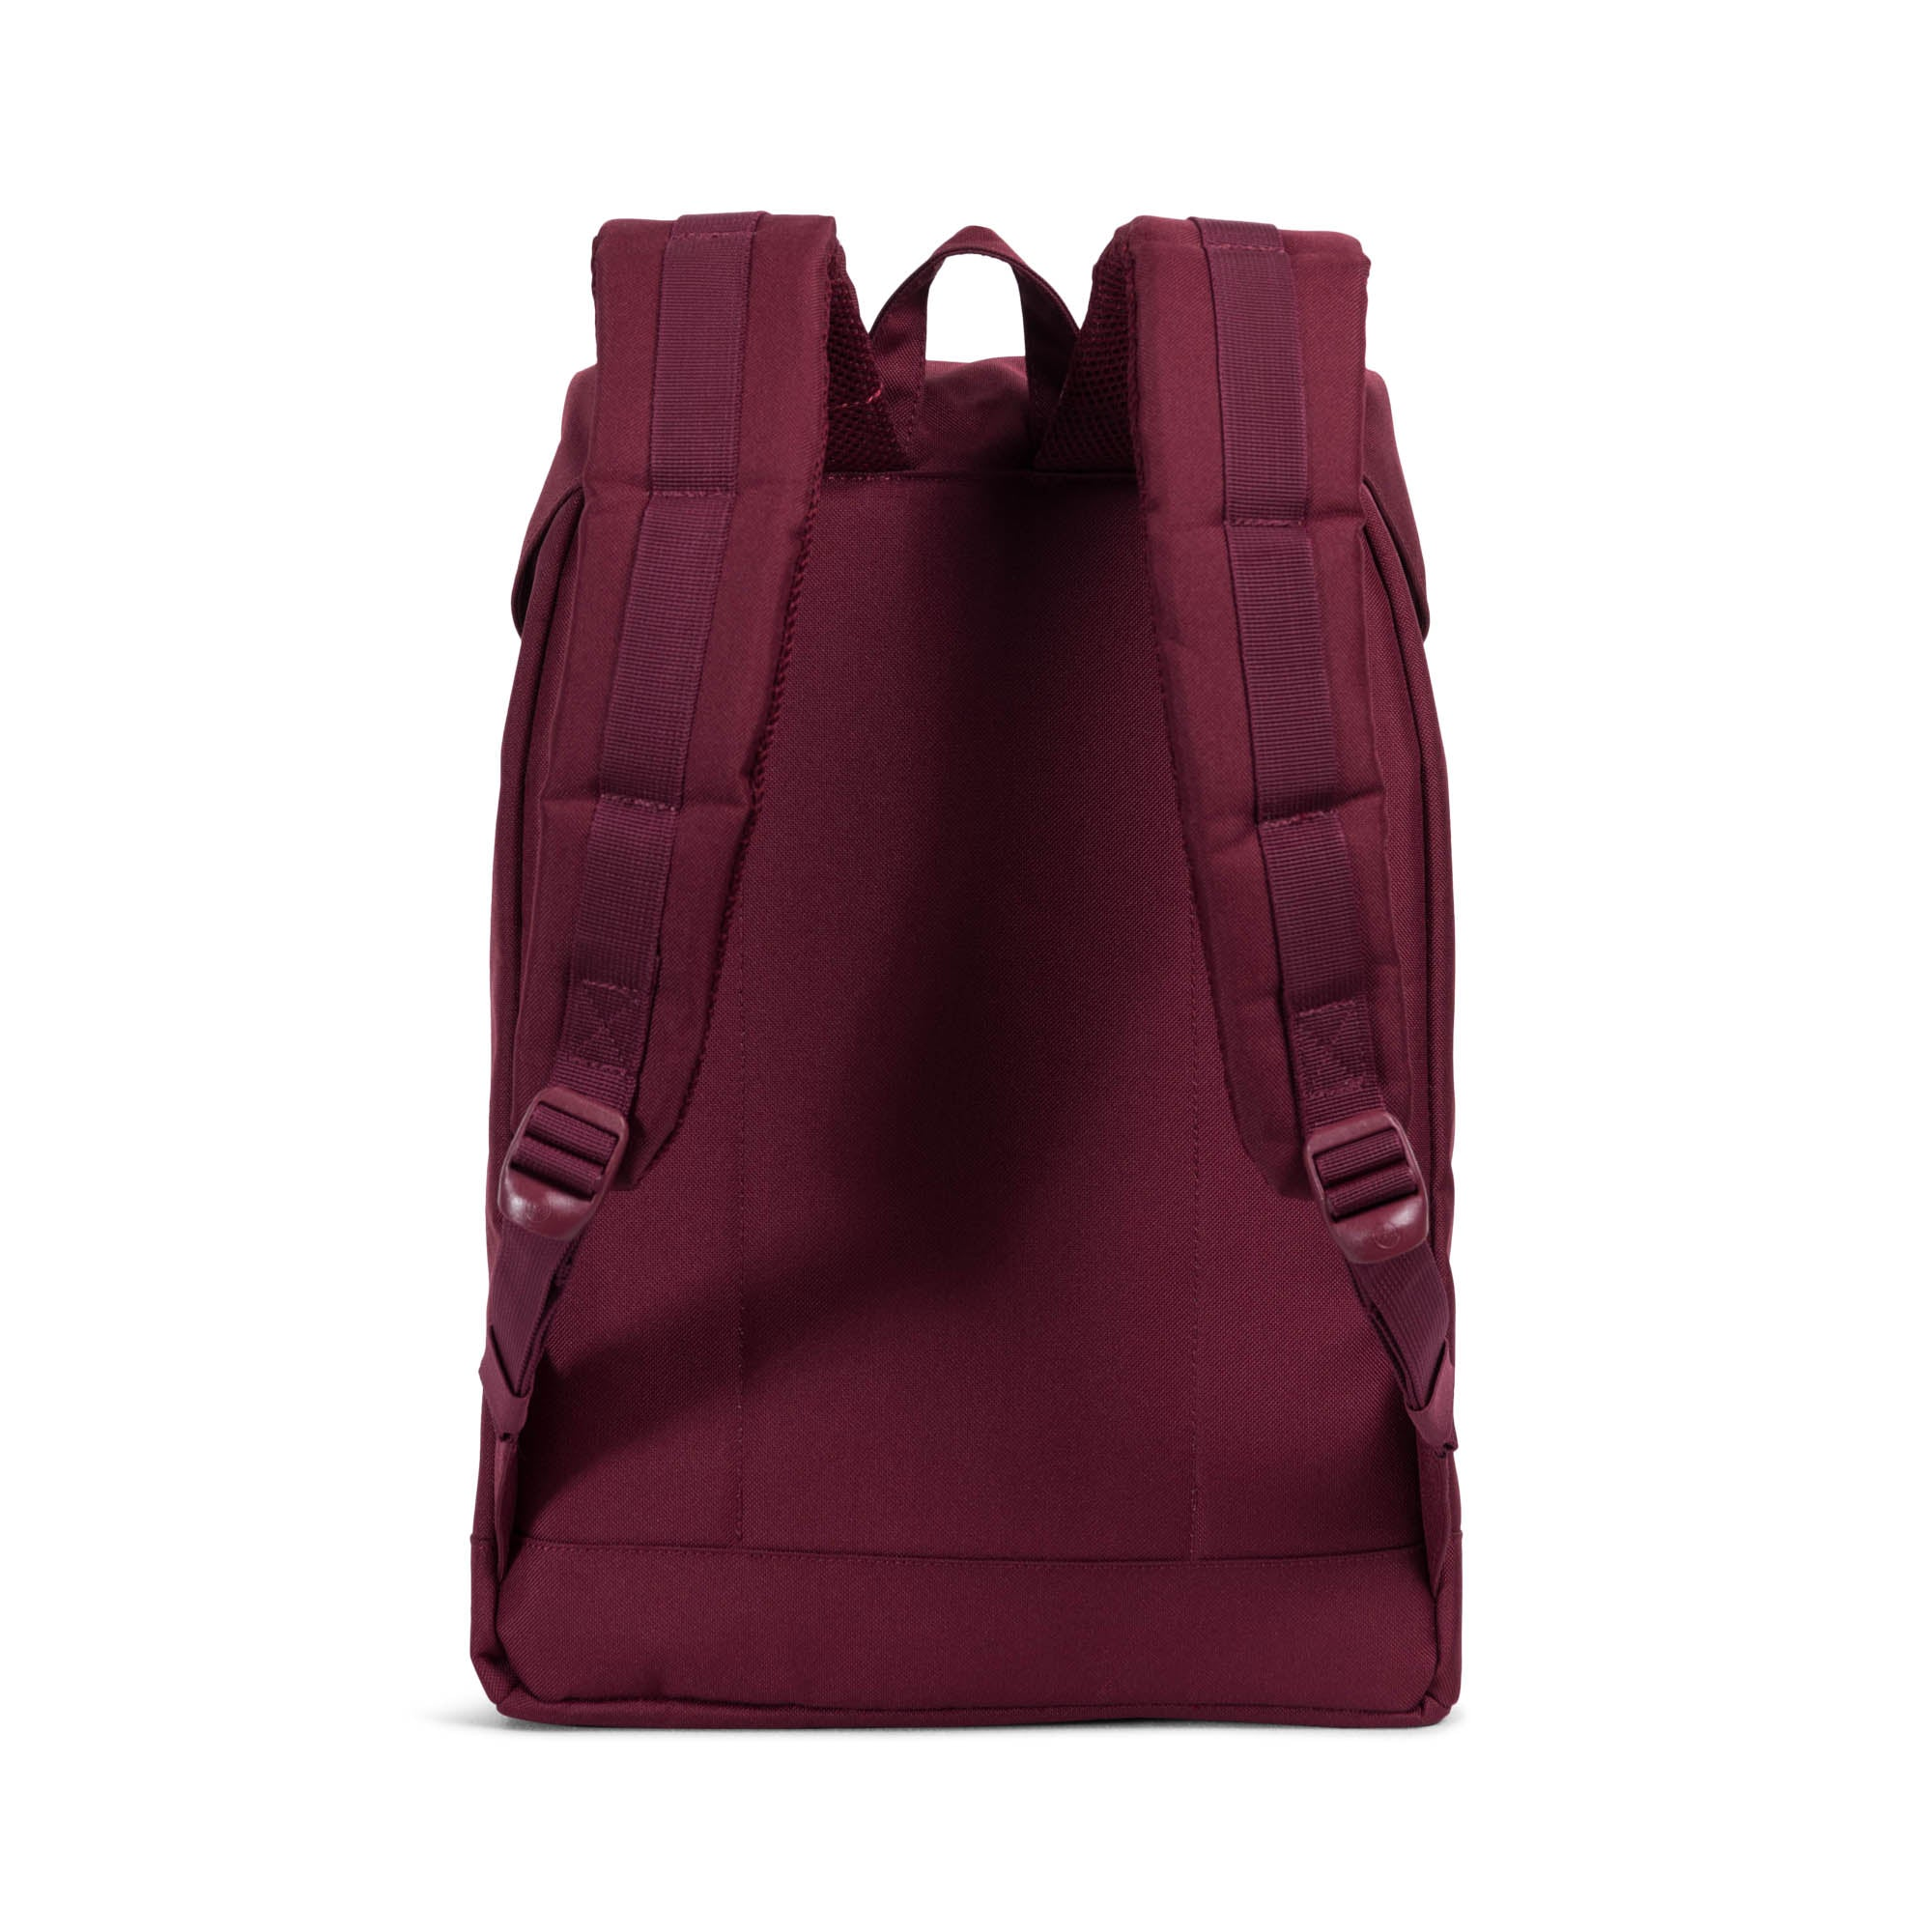 ff69988a6108 Herschel Offset Collection Retreat Backpack - Windsor Wine Leather. Herschel  Supply Co